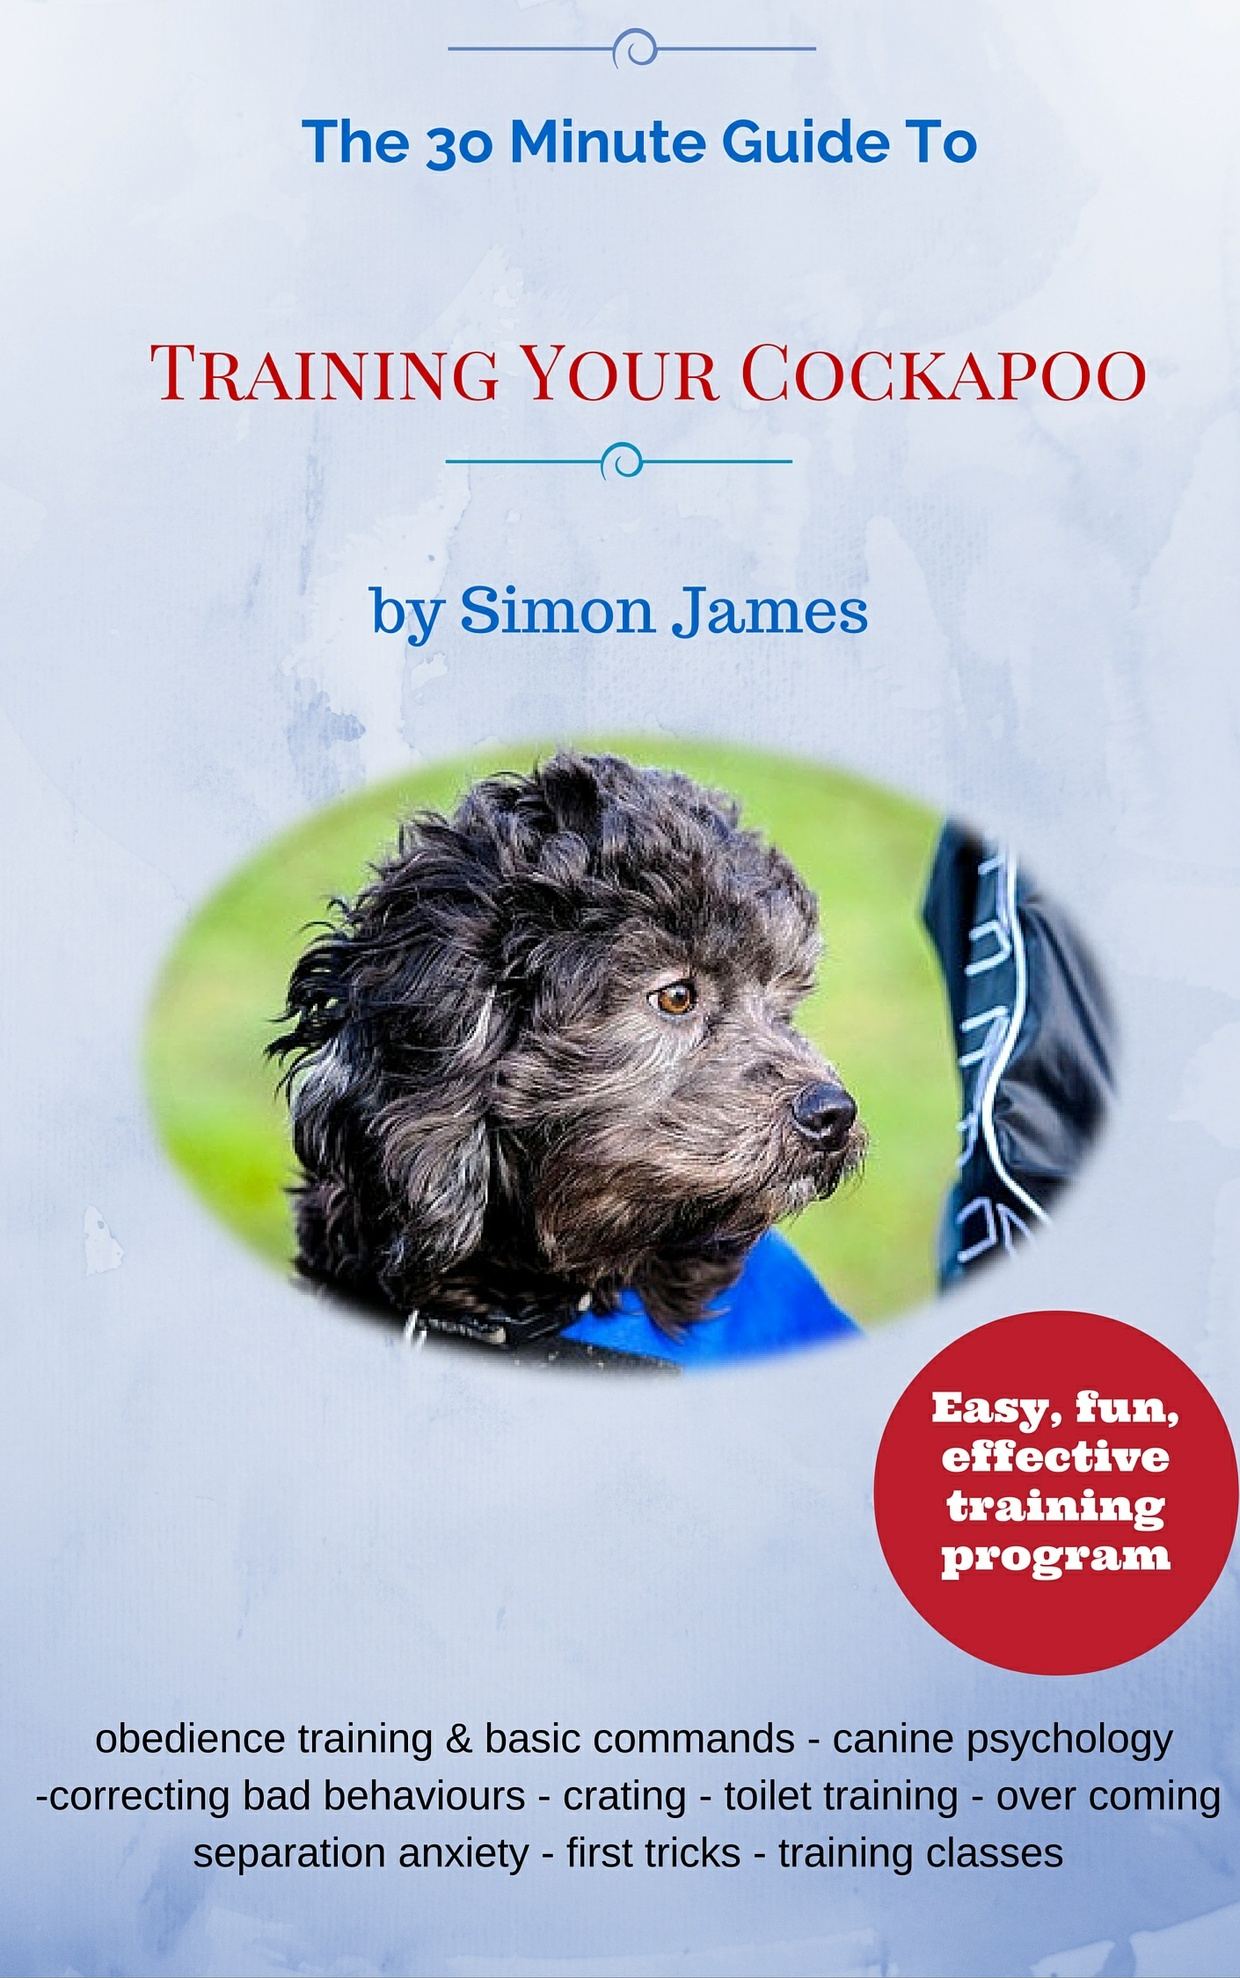 The 30 Minute Guide To Training Your Cockapoo